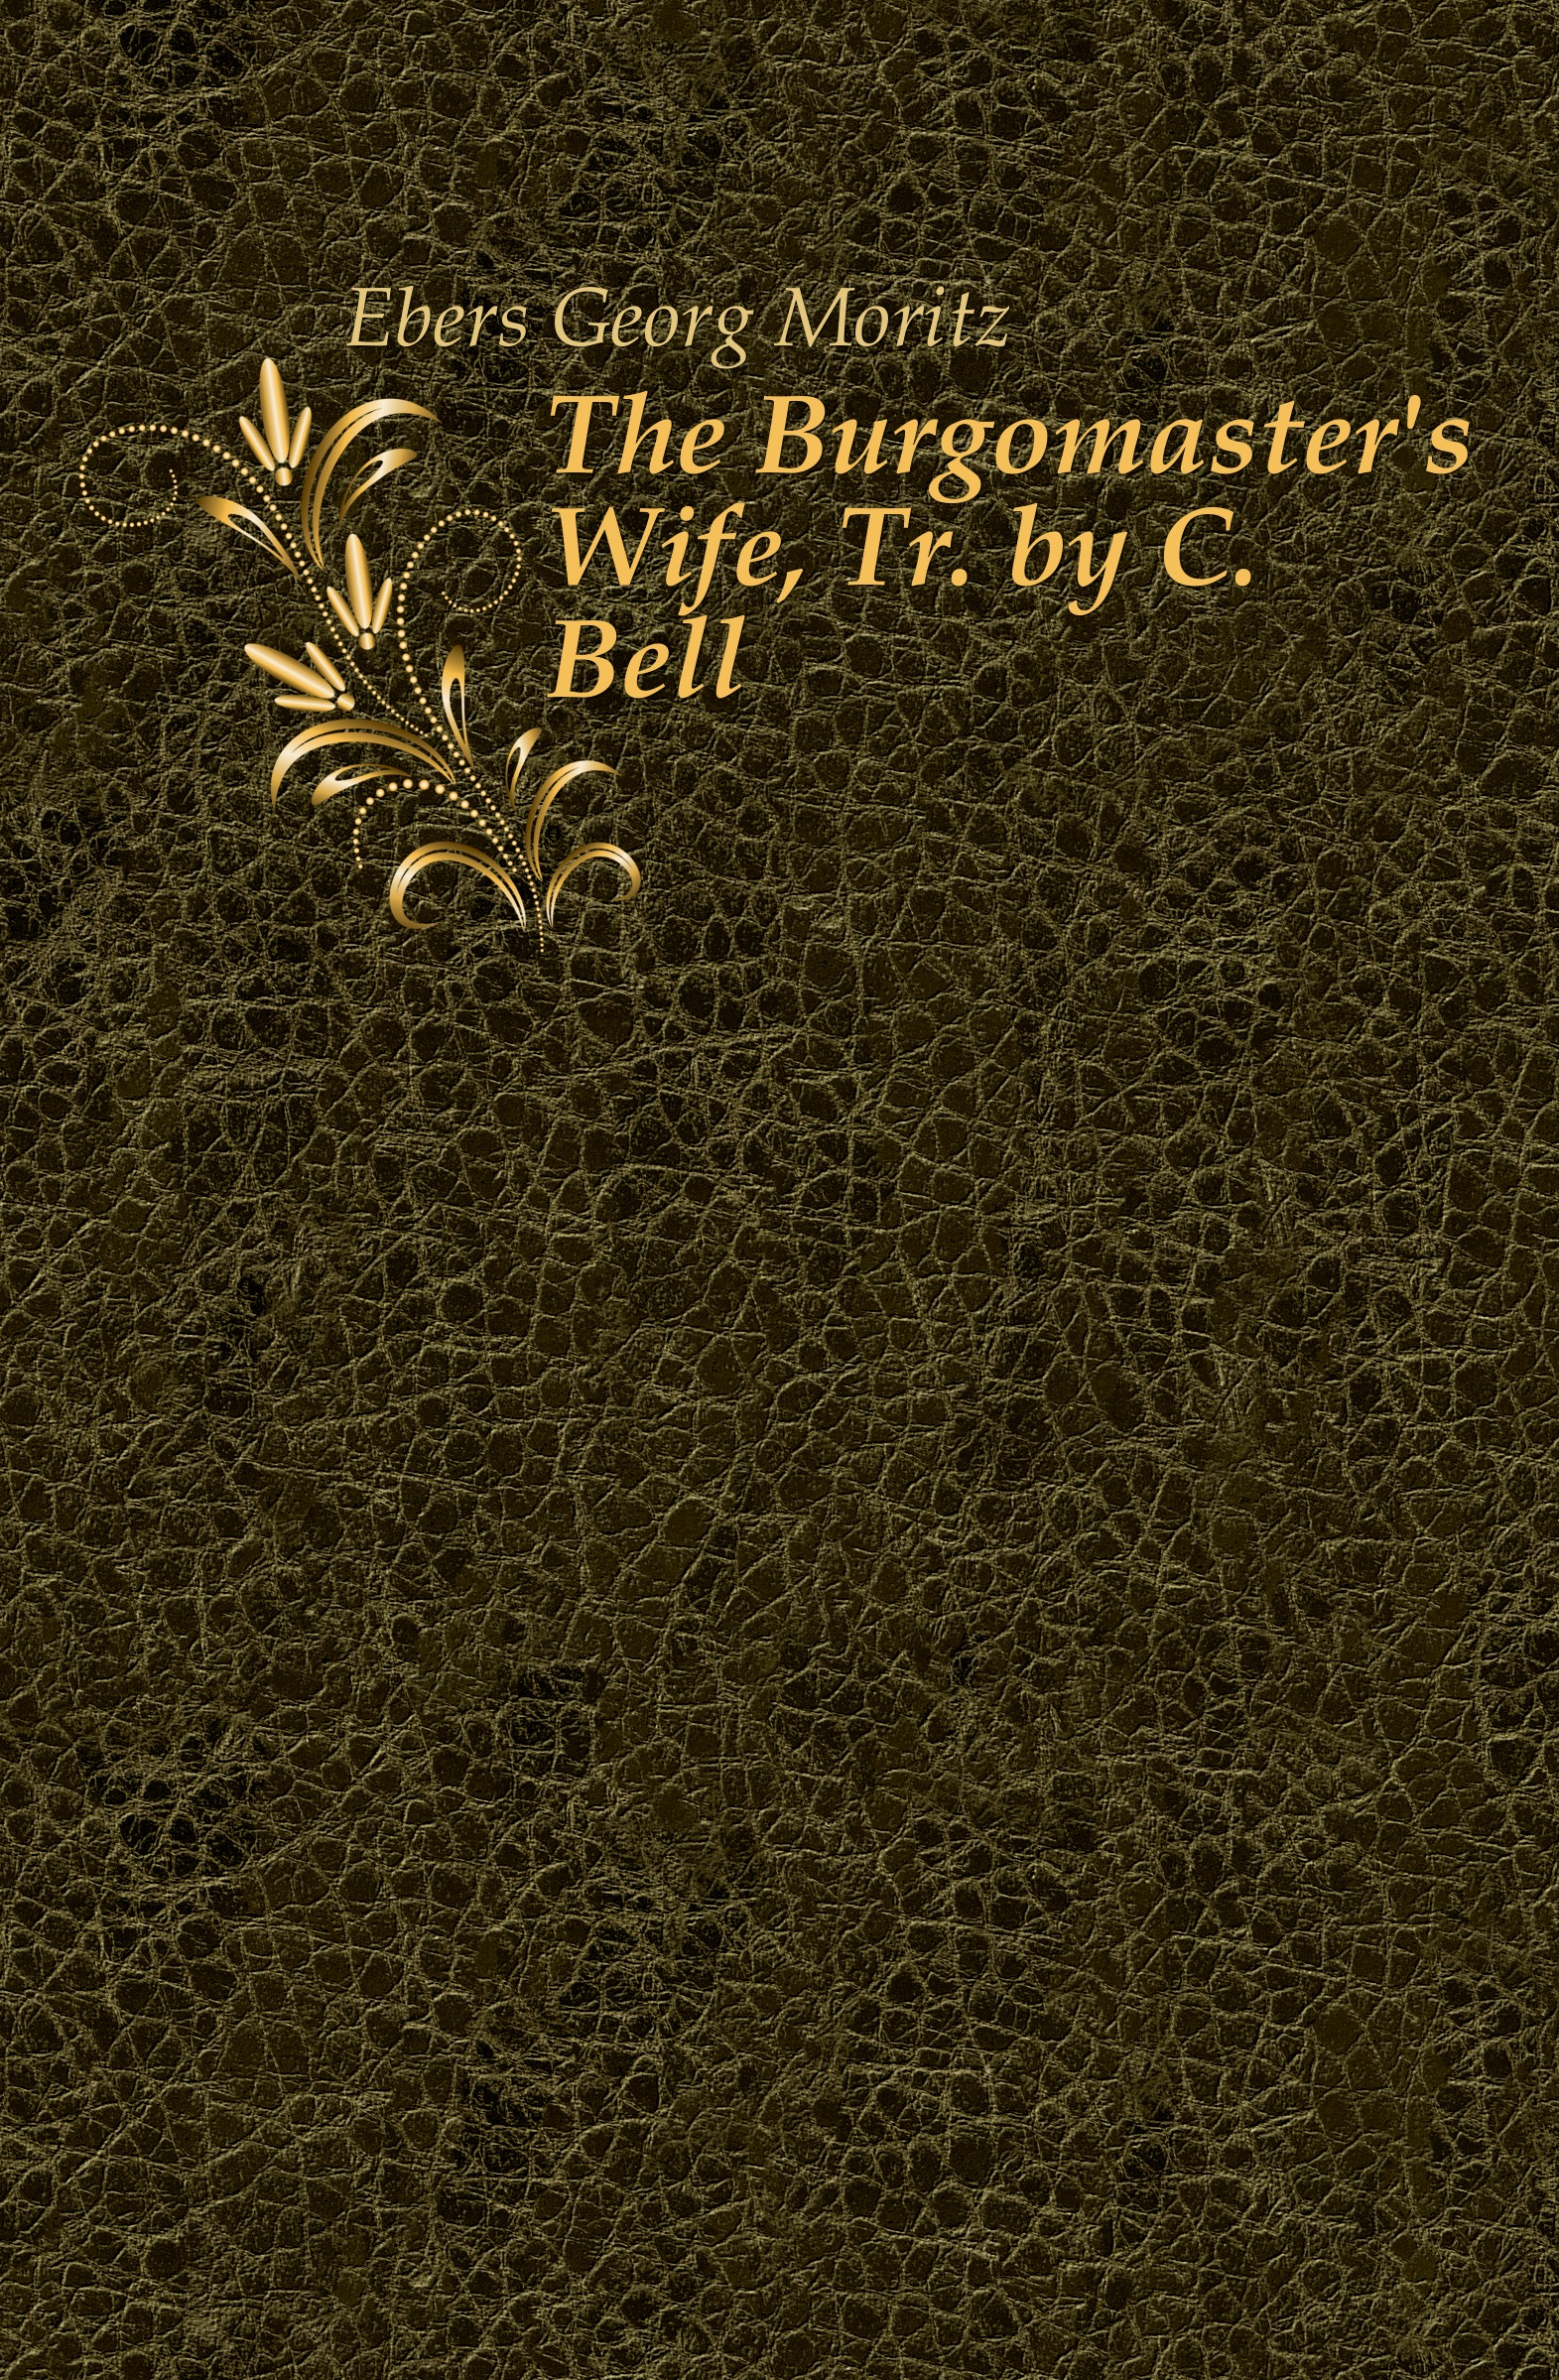 Georg Ebers The Burgomaster.s Wife, Tr. by C. Bell